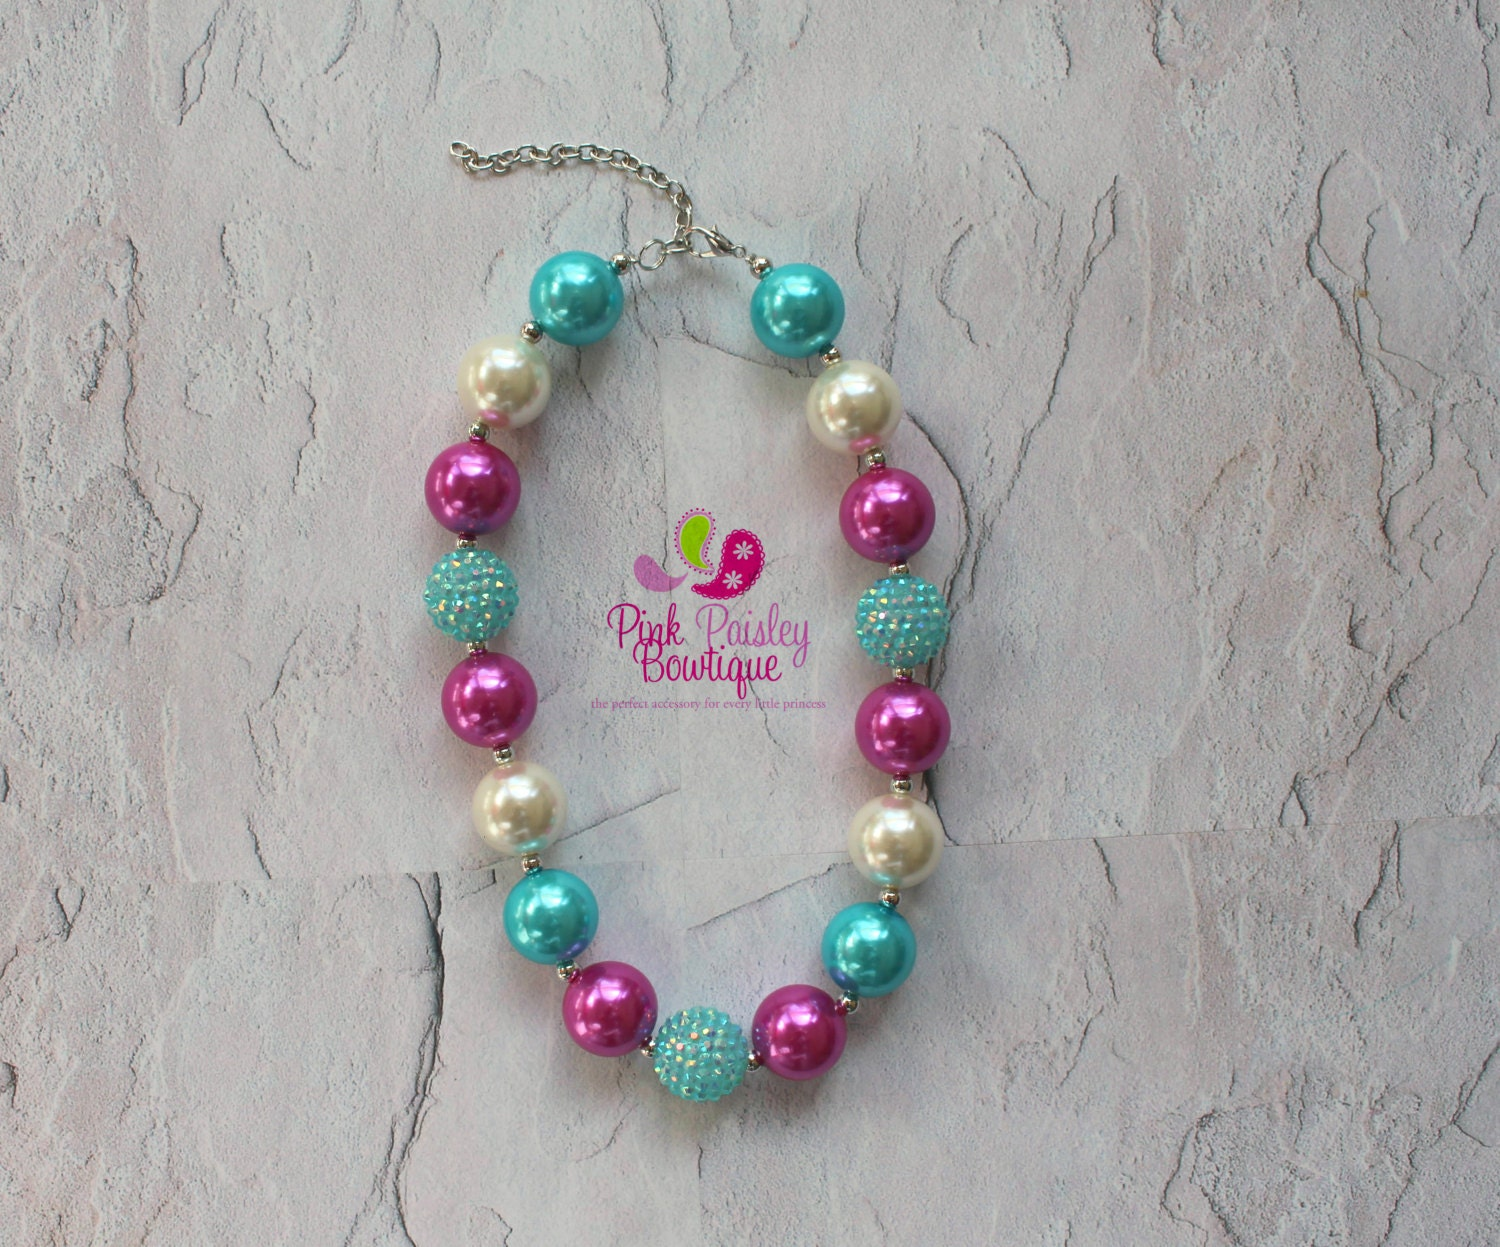 New Baby Girls Christmas Gift Set Kids Chunky Bubble Necklace, Find Complete Details about New Baby Girls Christmas Gift Set Kids Chunky Bubble Necklace,Kids Chunky Necklace,Kids Bubble Necklace,Kids Necklace from Necklaces Supplier or .